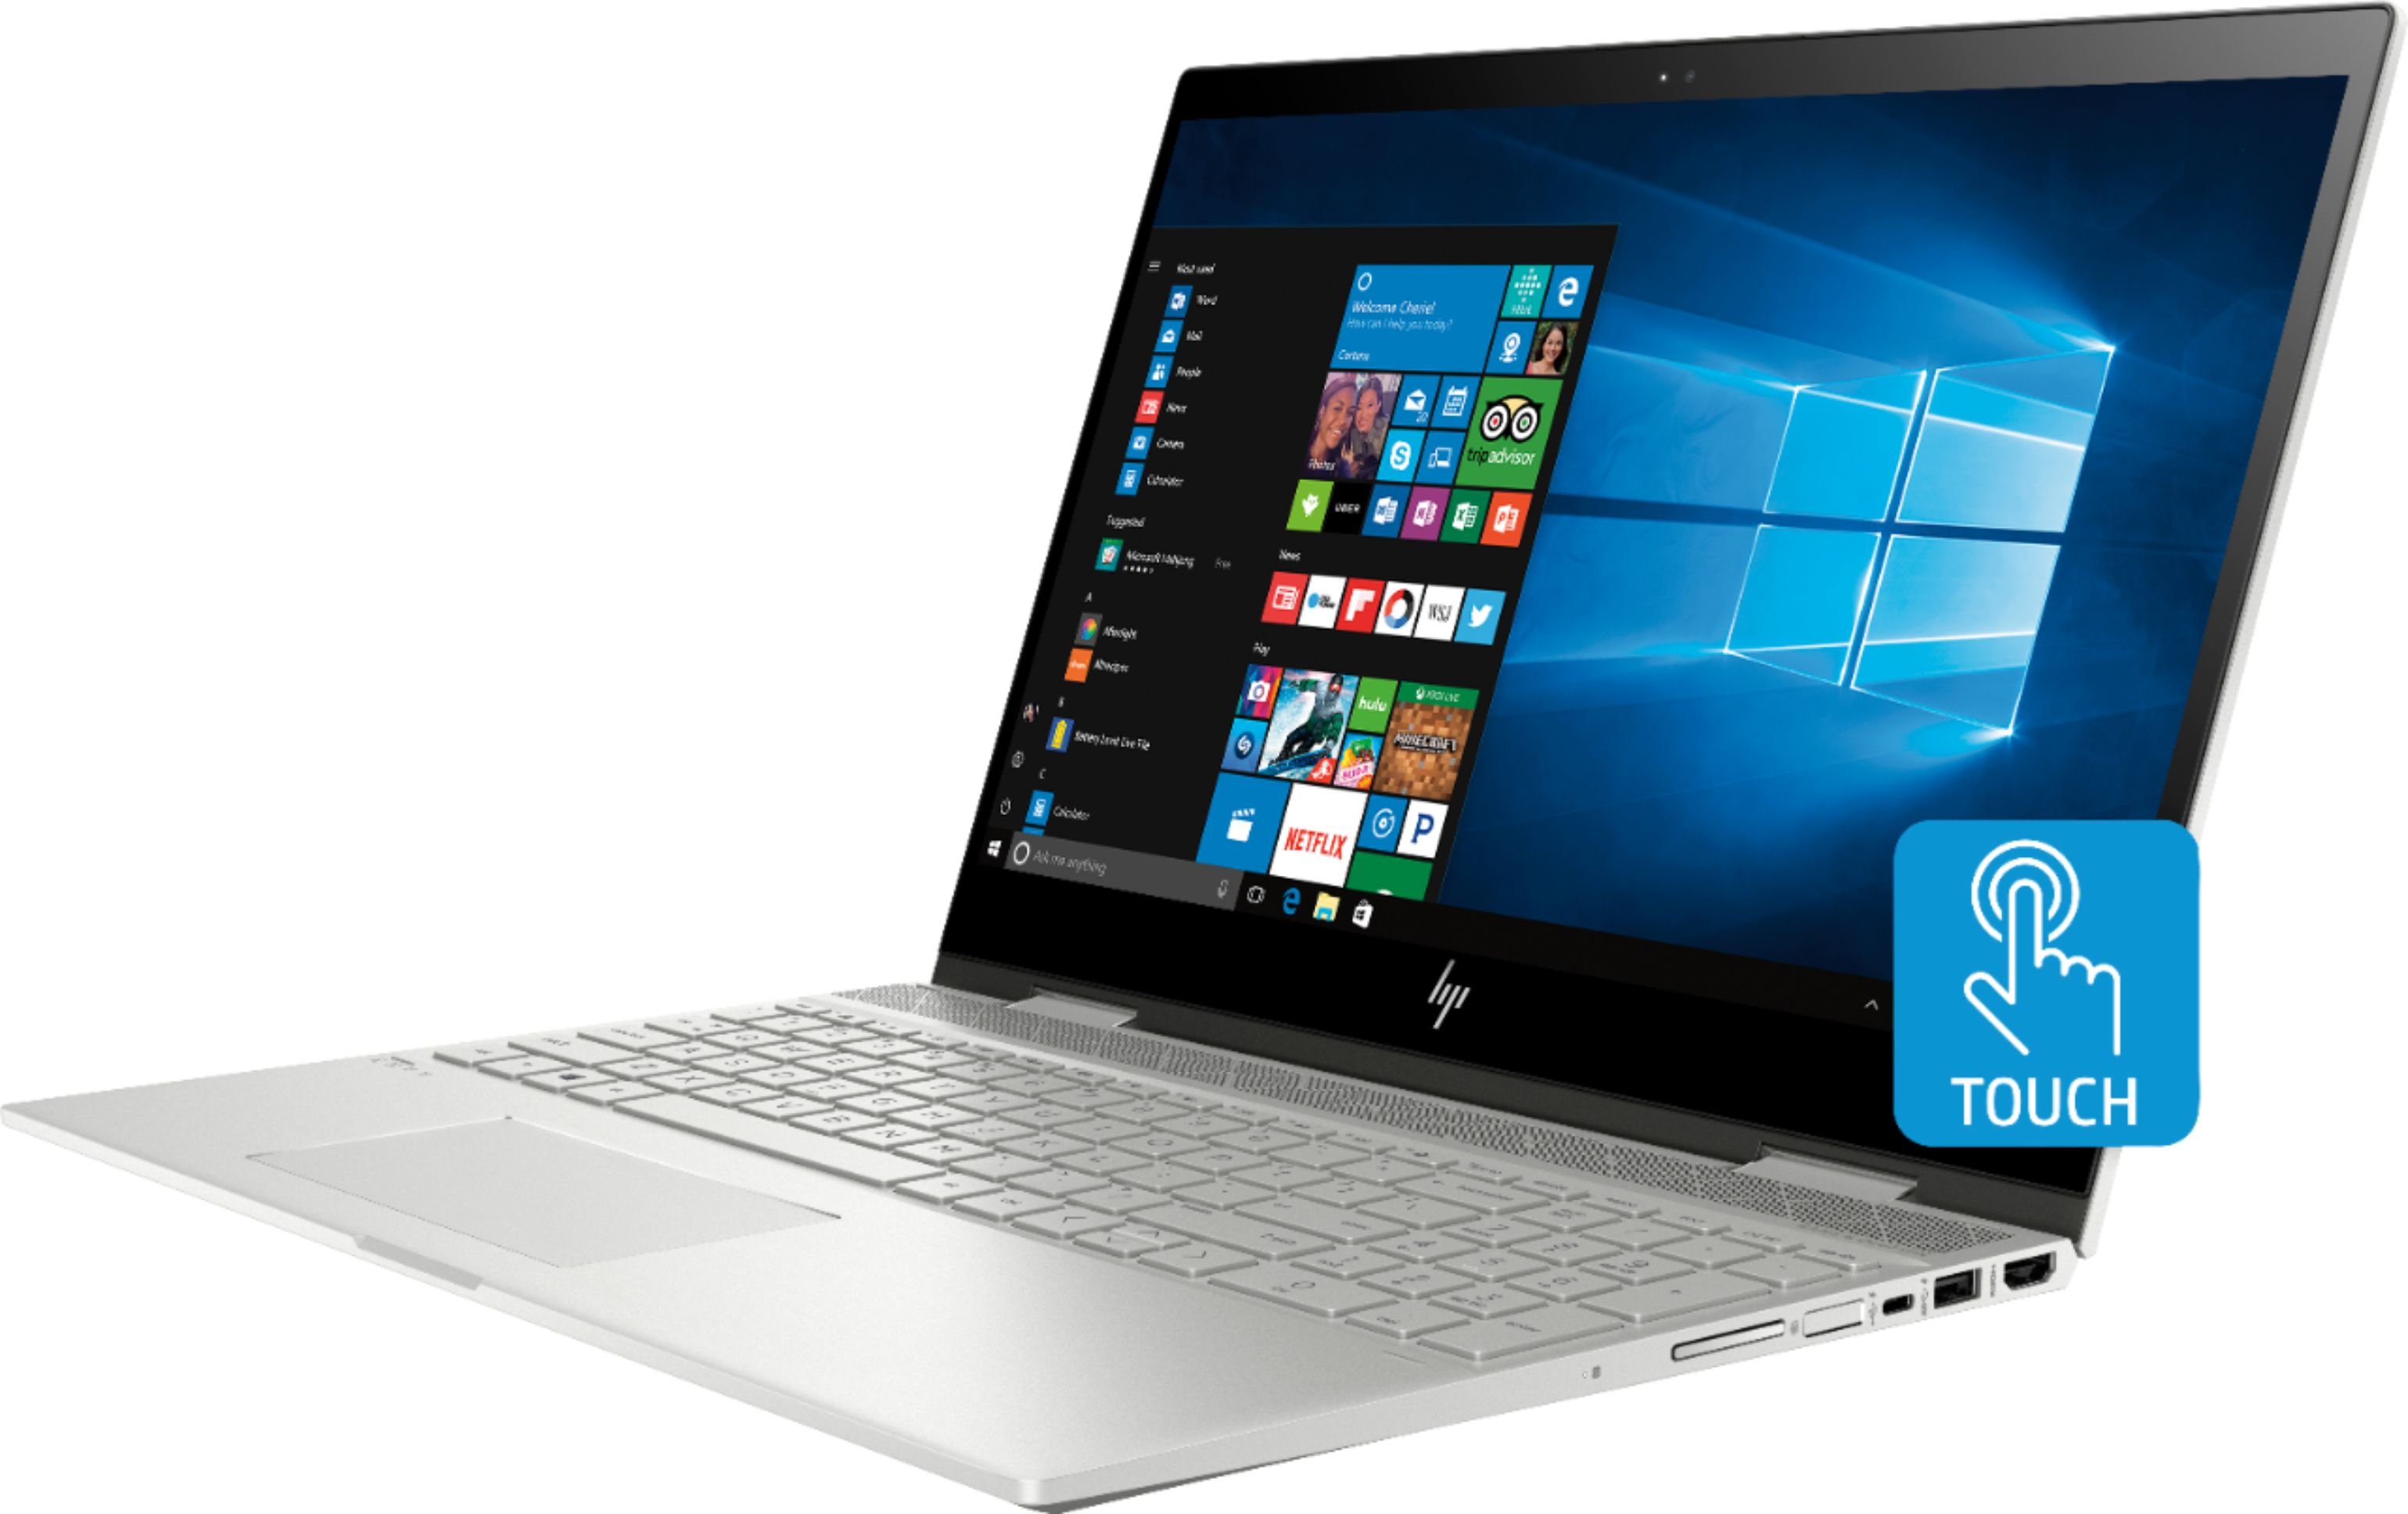 """Left Zoom. Geek Squad Certified Refurbished ENVY x360 2-in-1 15.6"""" Touch-Screen Laptop - Intel Core i7 - 12GB Memory - 256GB SSD - HP Finish In Natural Silver."""